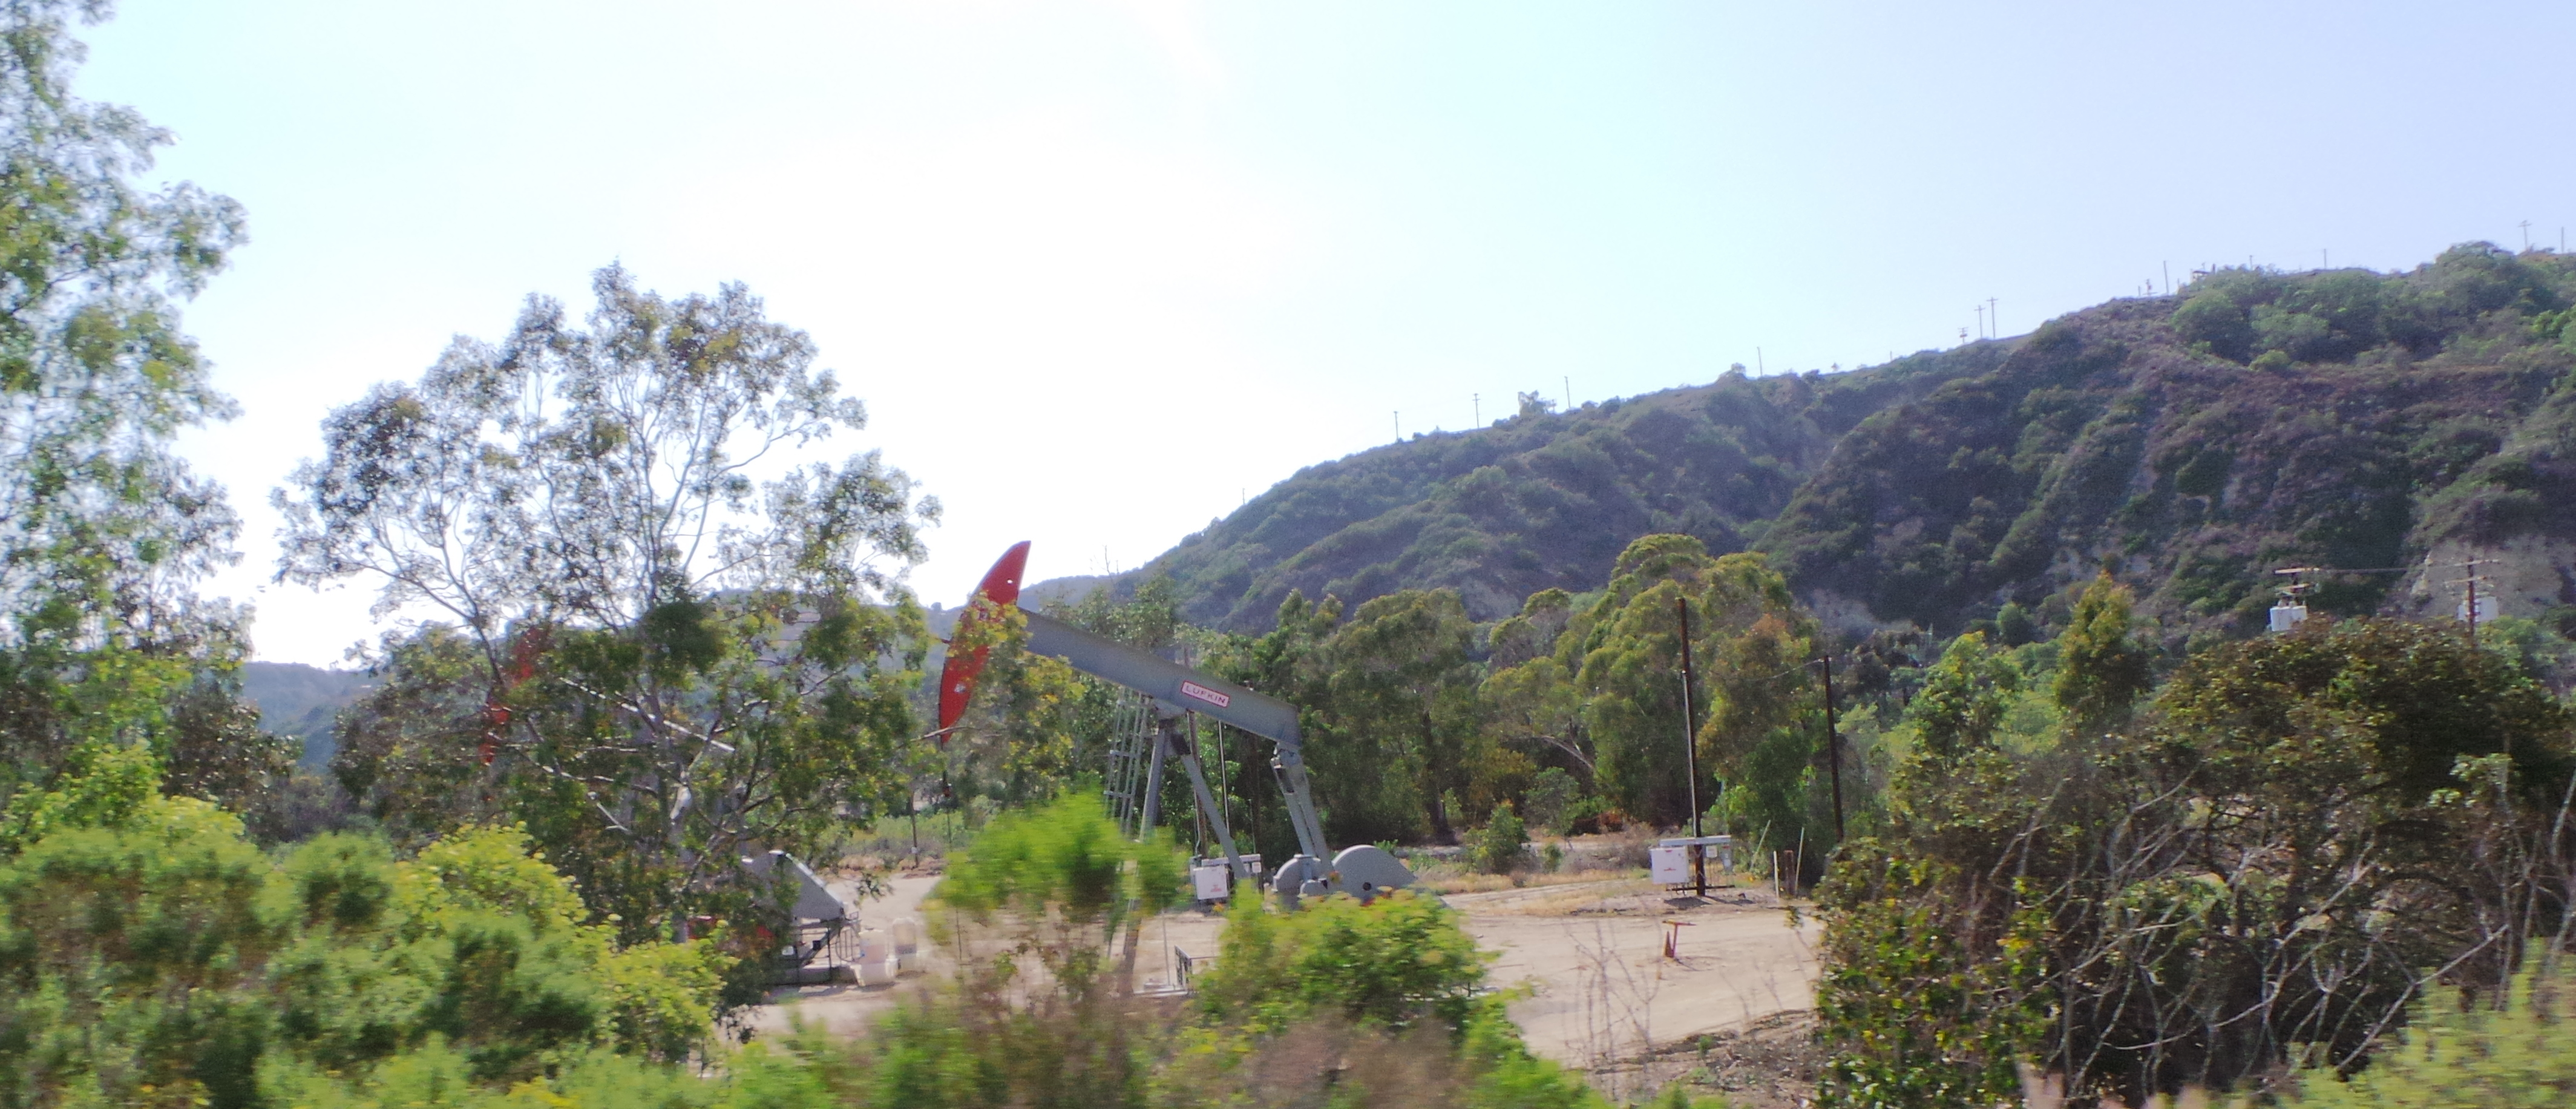 Drilling for Oil on Drive from Ojai California